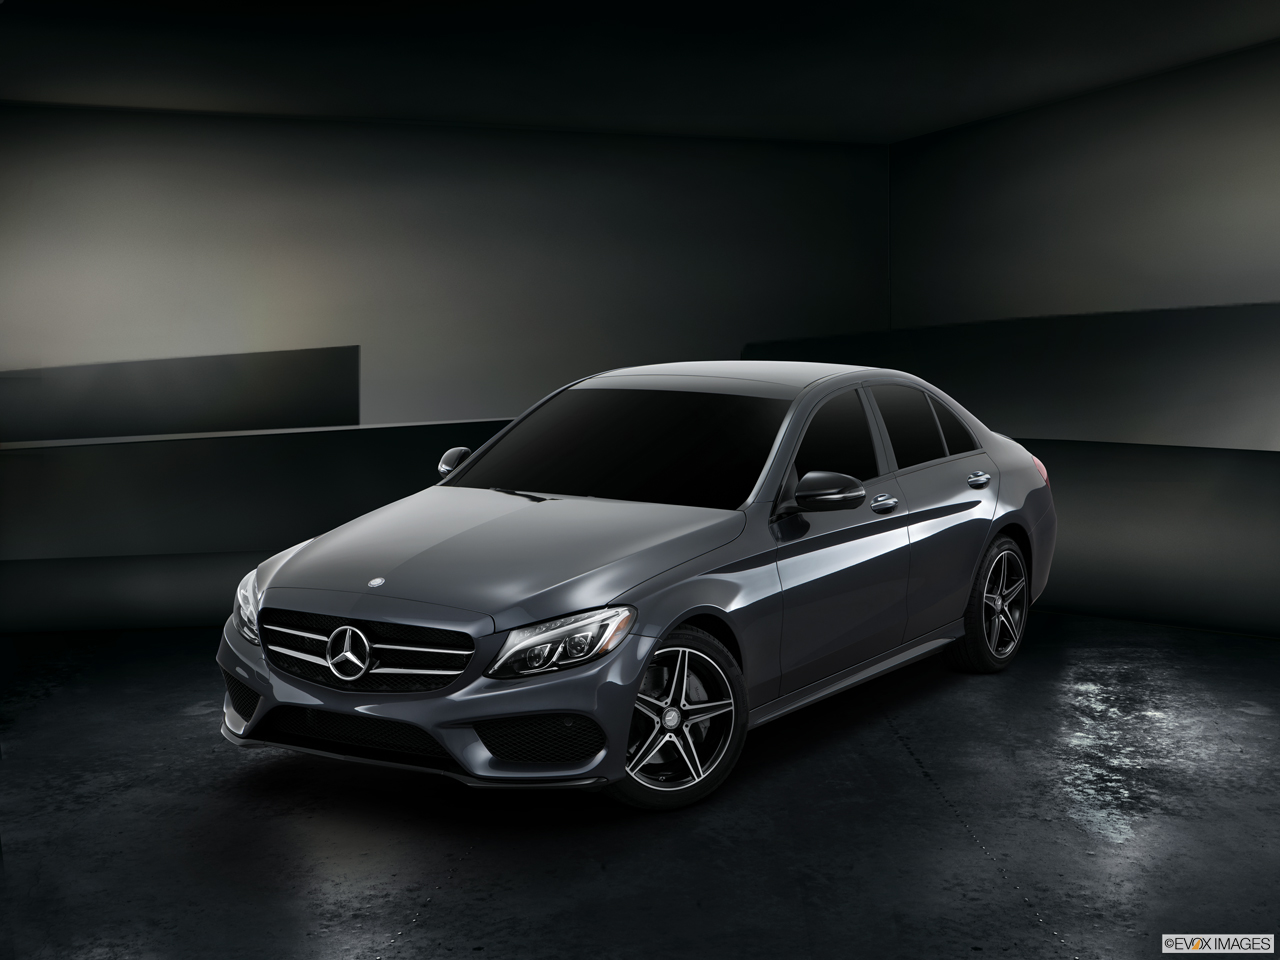 2016 mercedes benz c300 dealer serving syracuse mercedes for Syracuse mercedes benz dealers